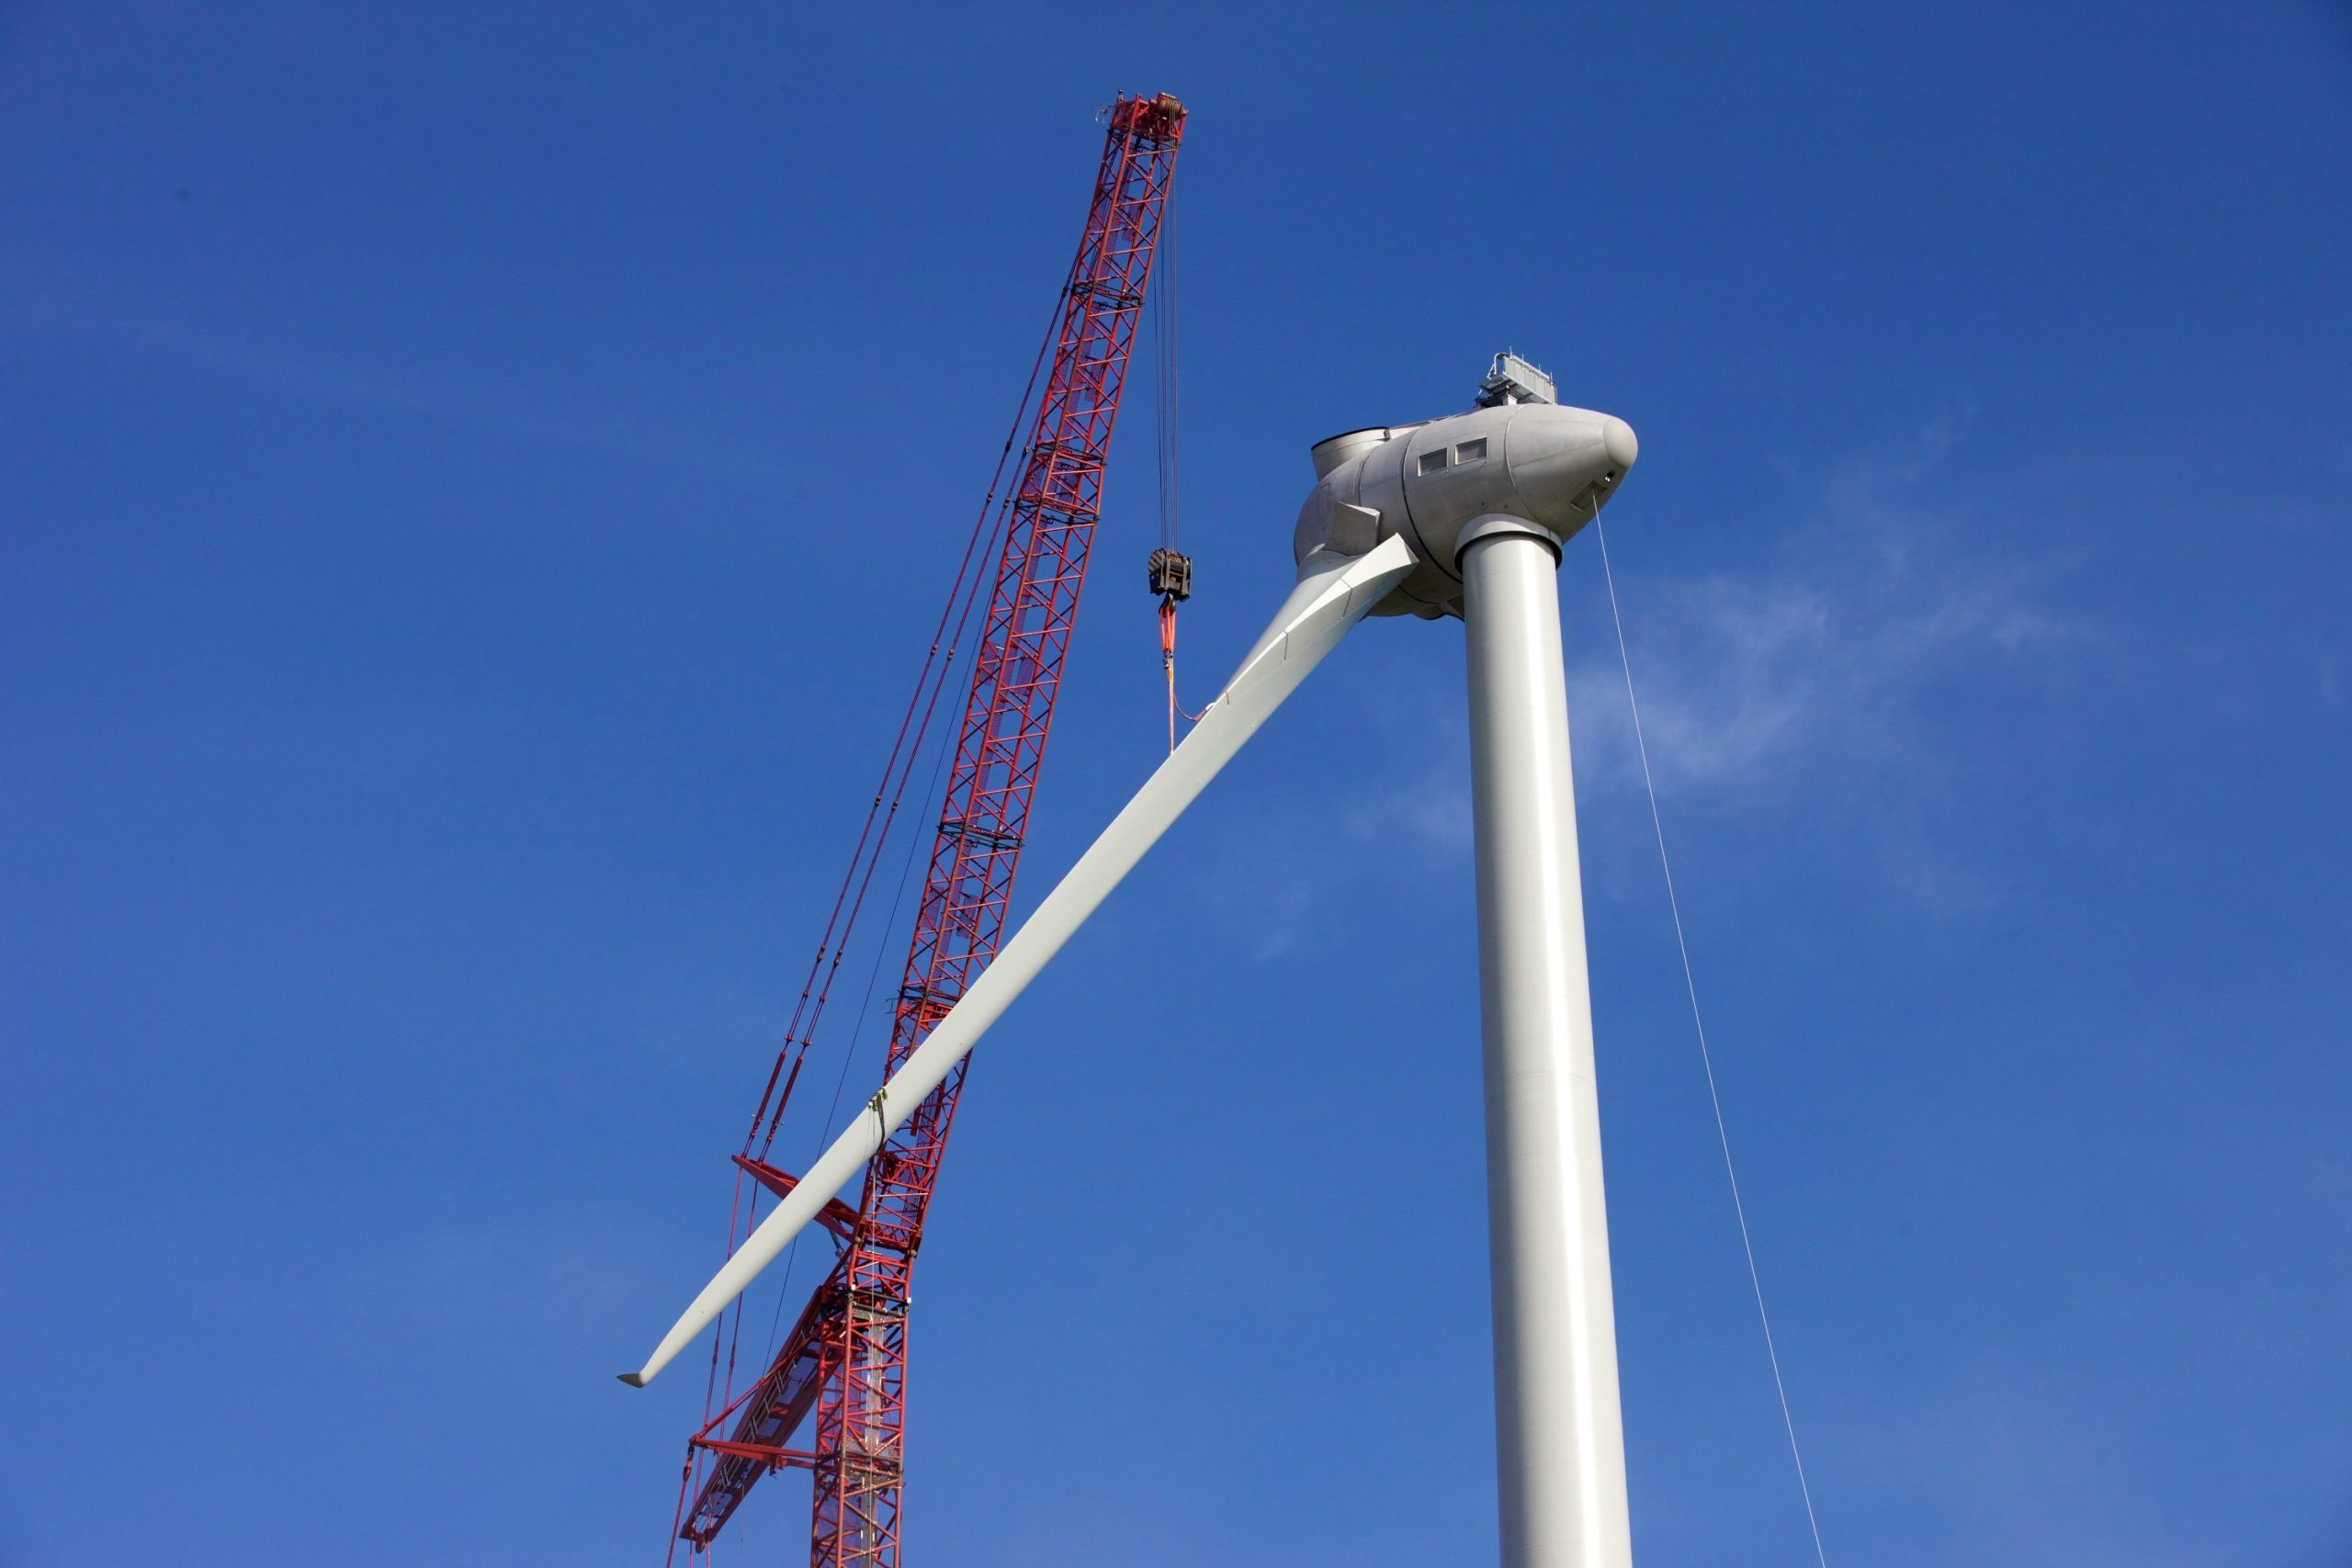 Wind Turbine Construction Photo Dublin Ireland